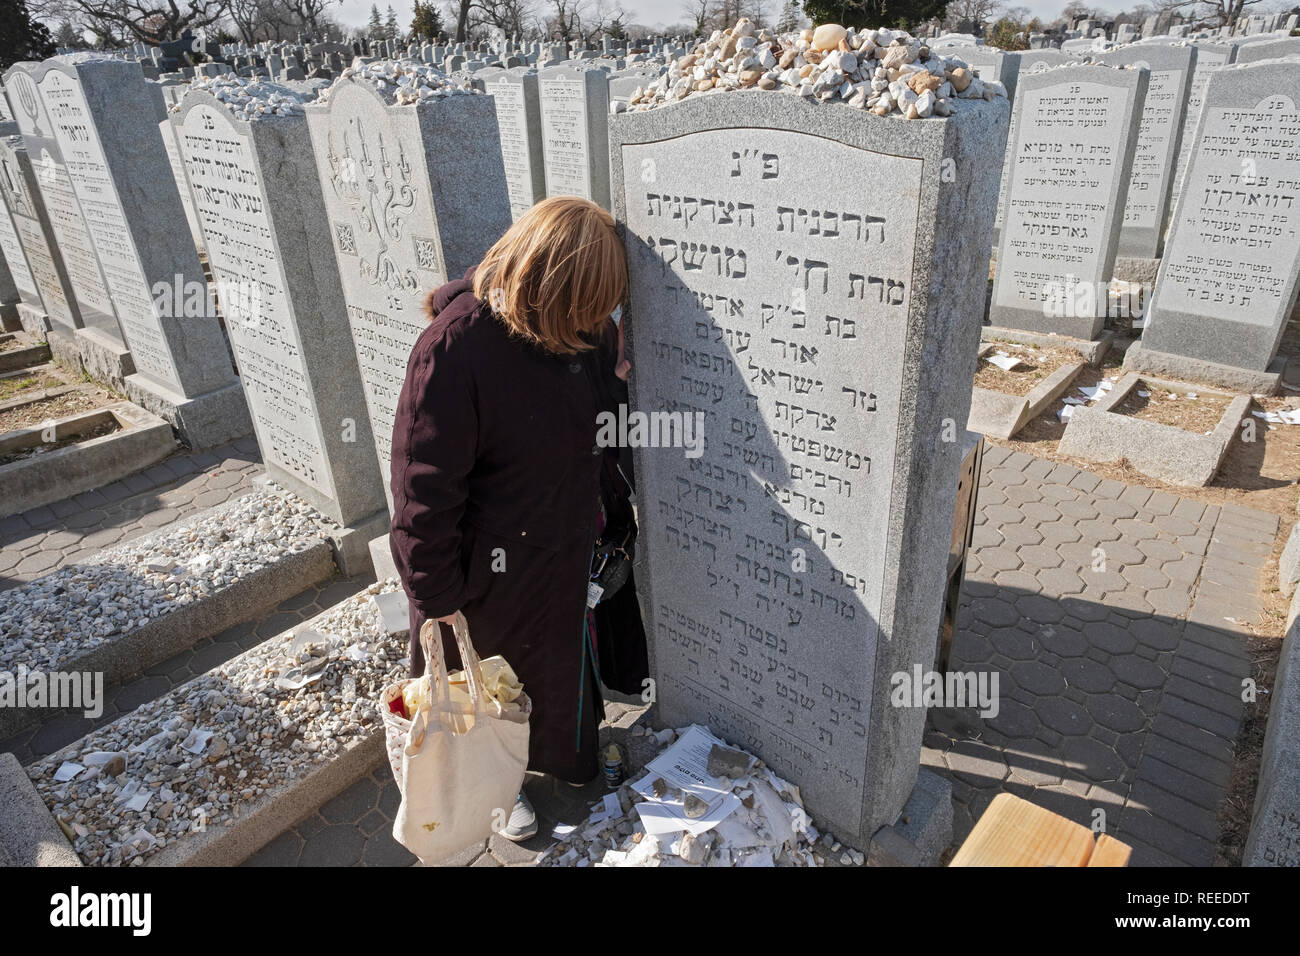 An orthodox Jewish woman prays at the headstone of Chaya Mushka Schneerson, the wife of the Lubavitcher Rebbe. In Cambria Heights, Queens, New York - Stock Image